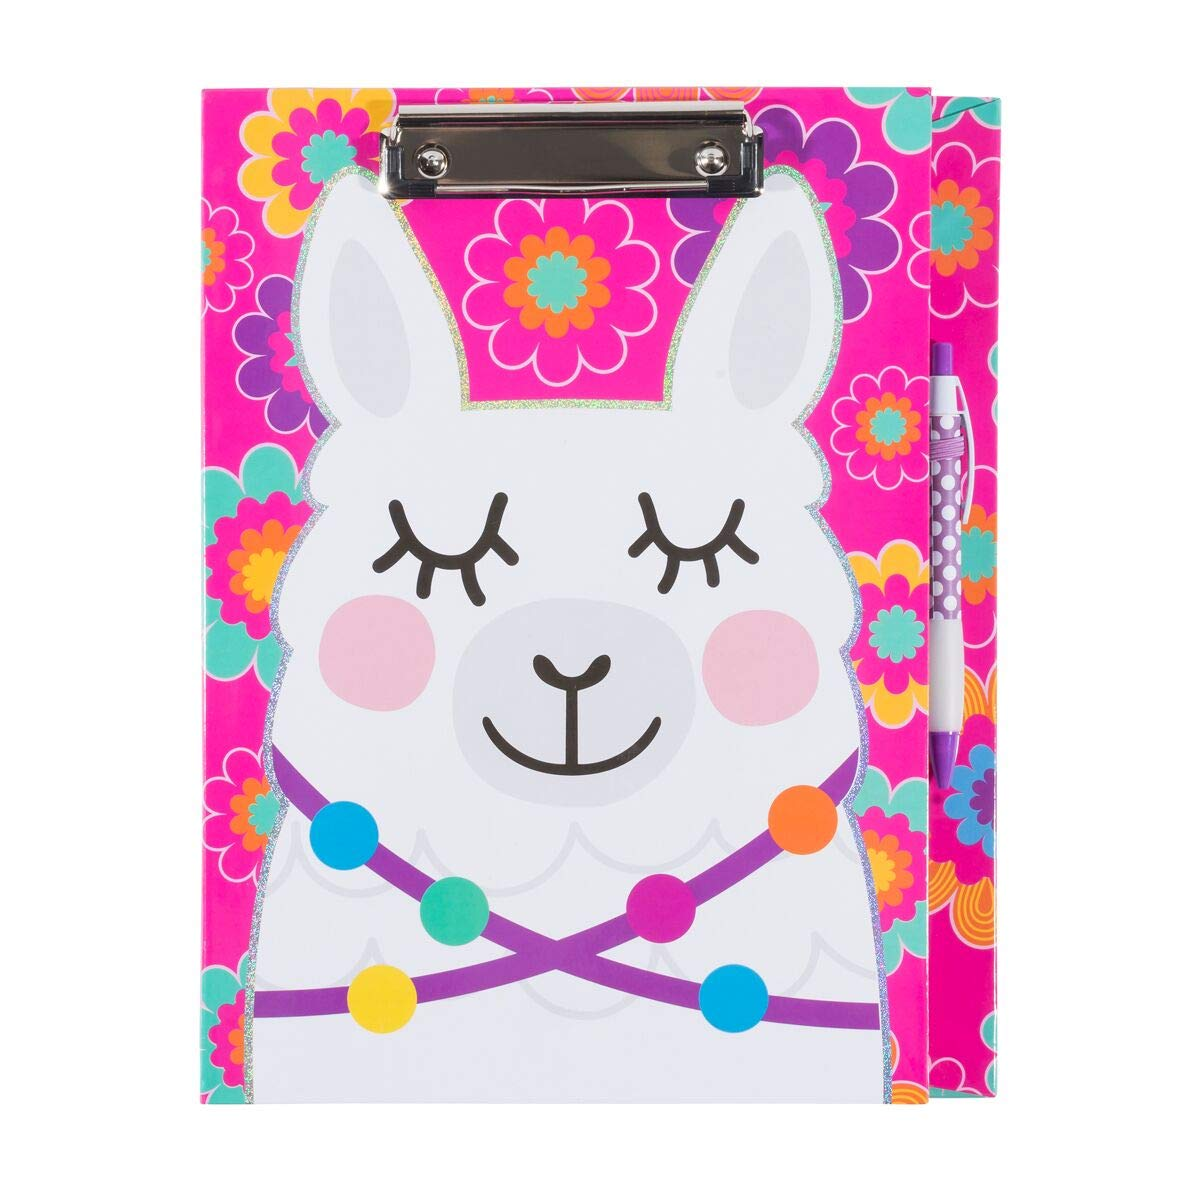 Three Cheers for Girls Clipboard and Stationery Set